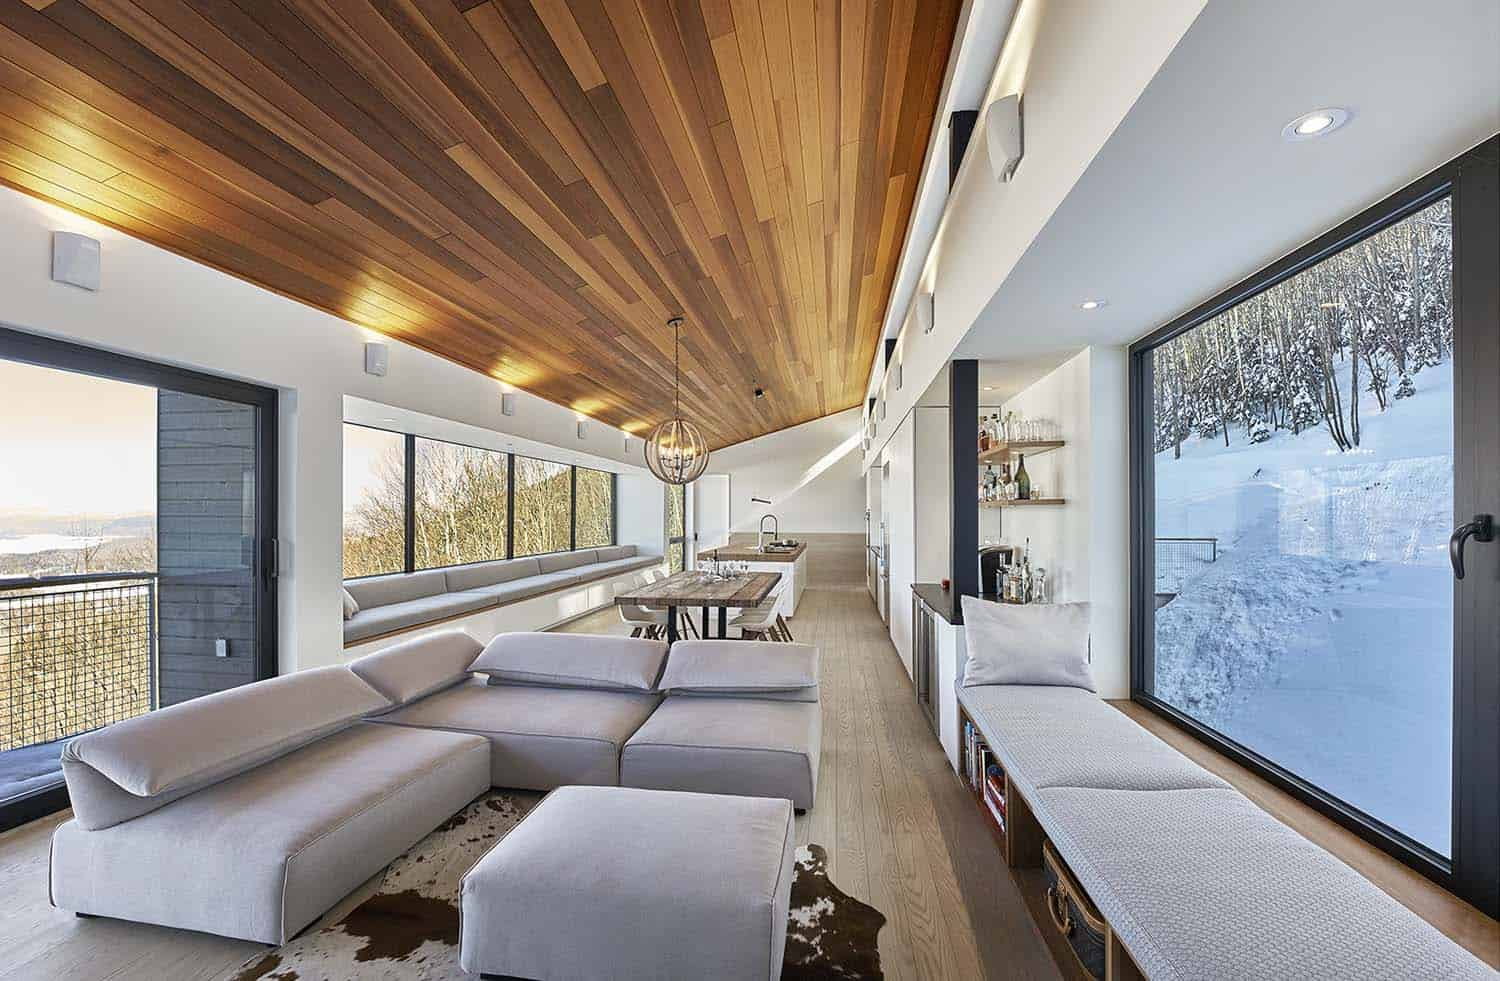 Modern ski chalet nestled in snowy slopes of the laurentian mountains